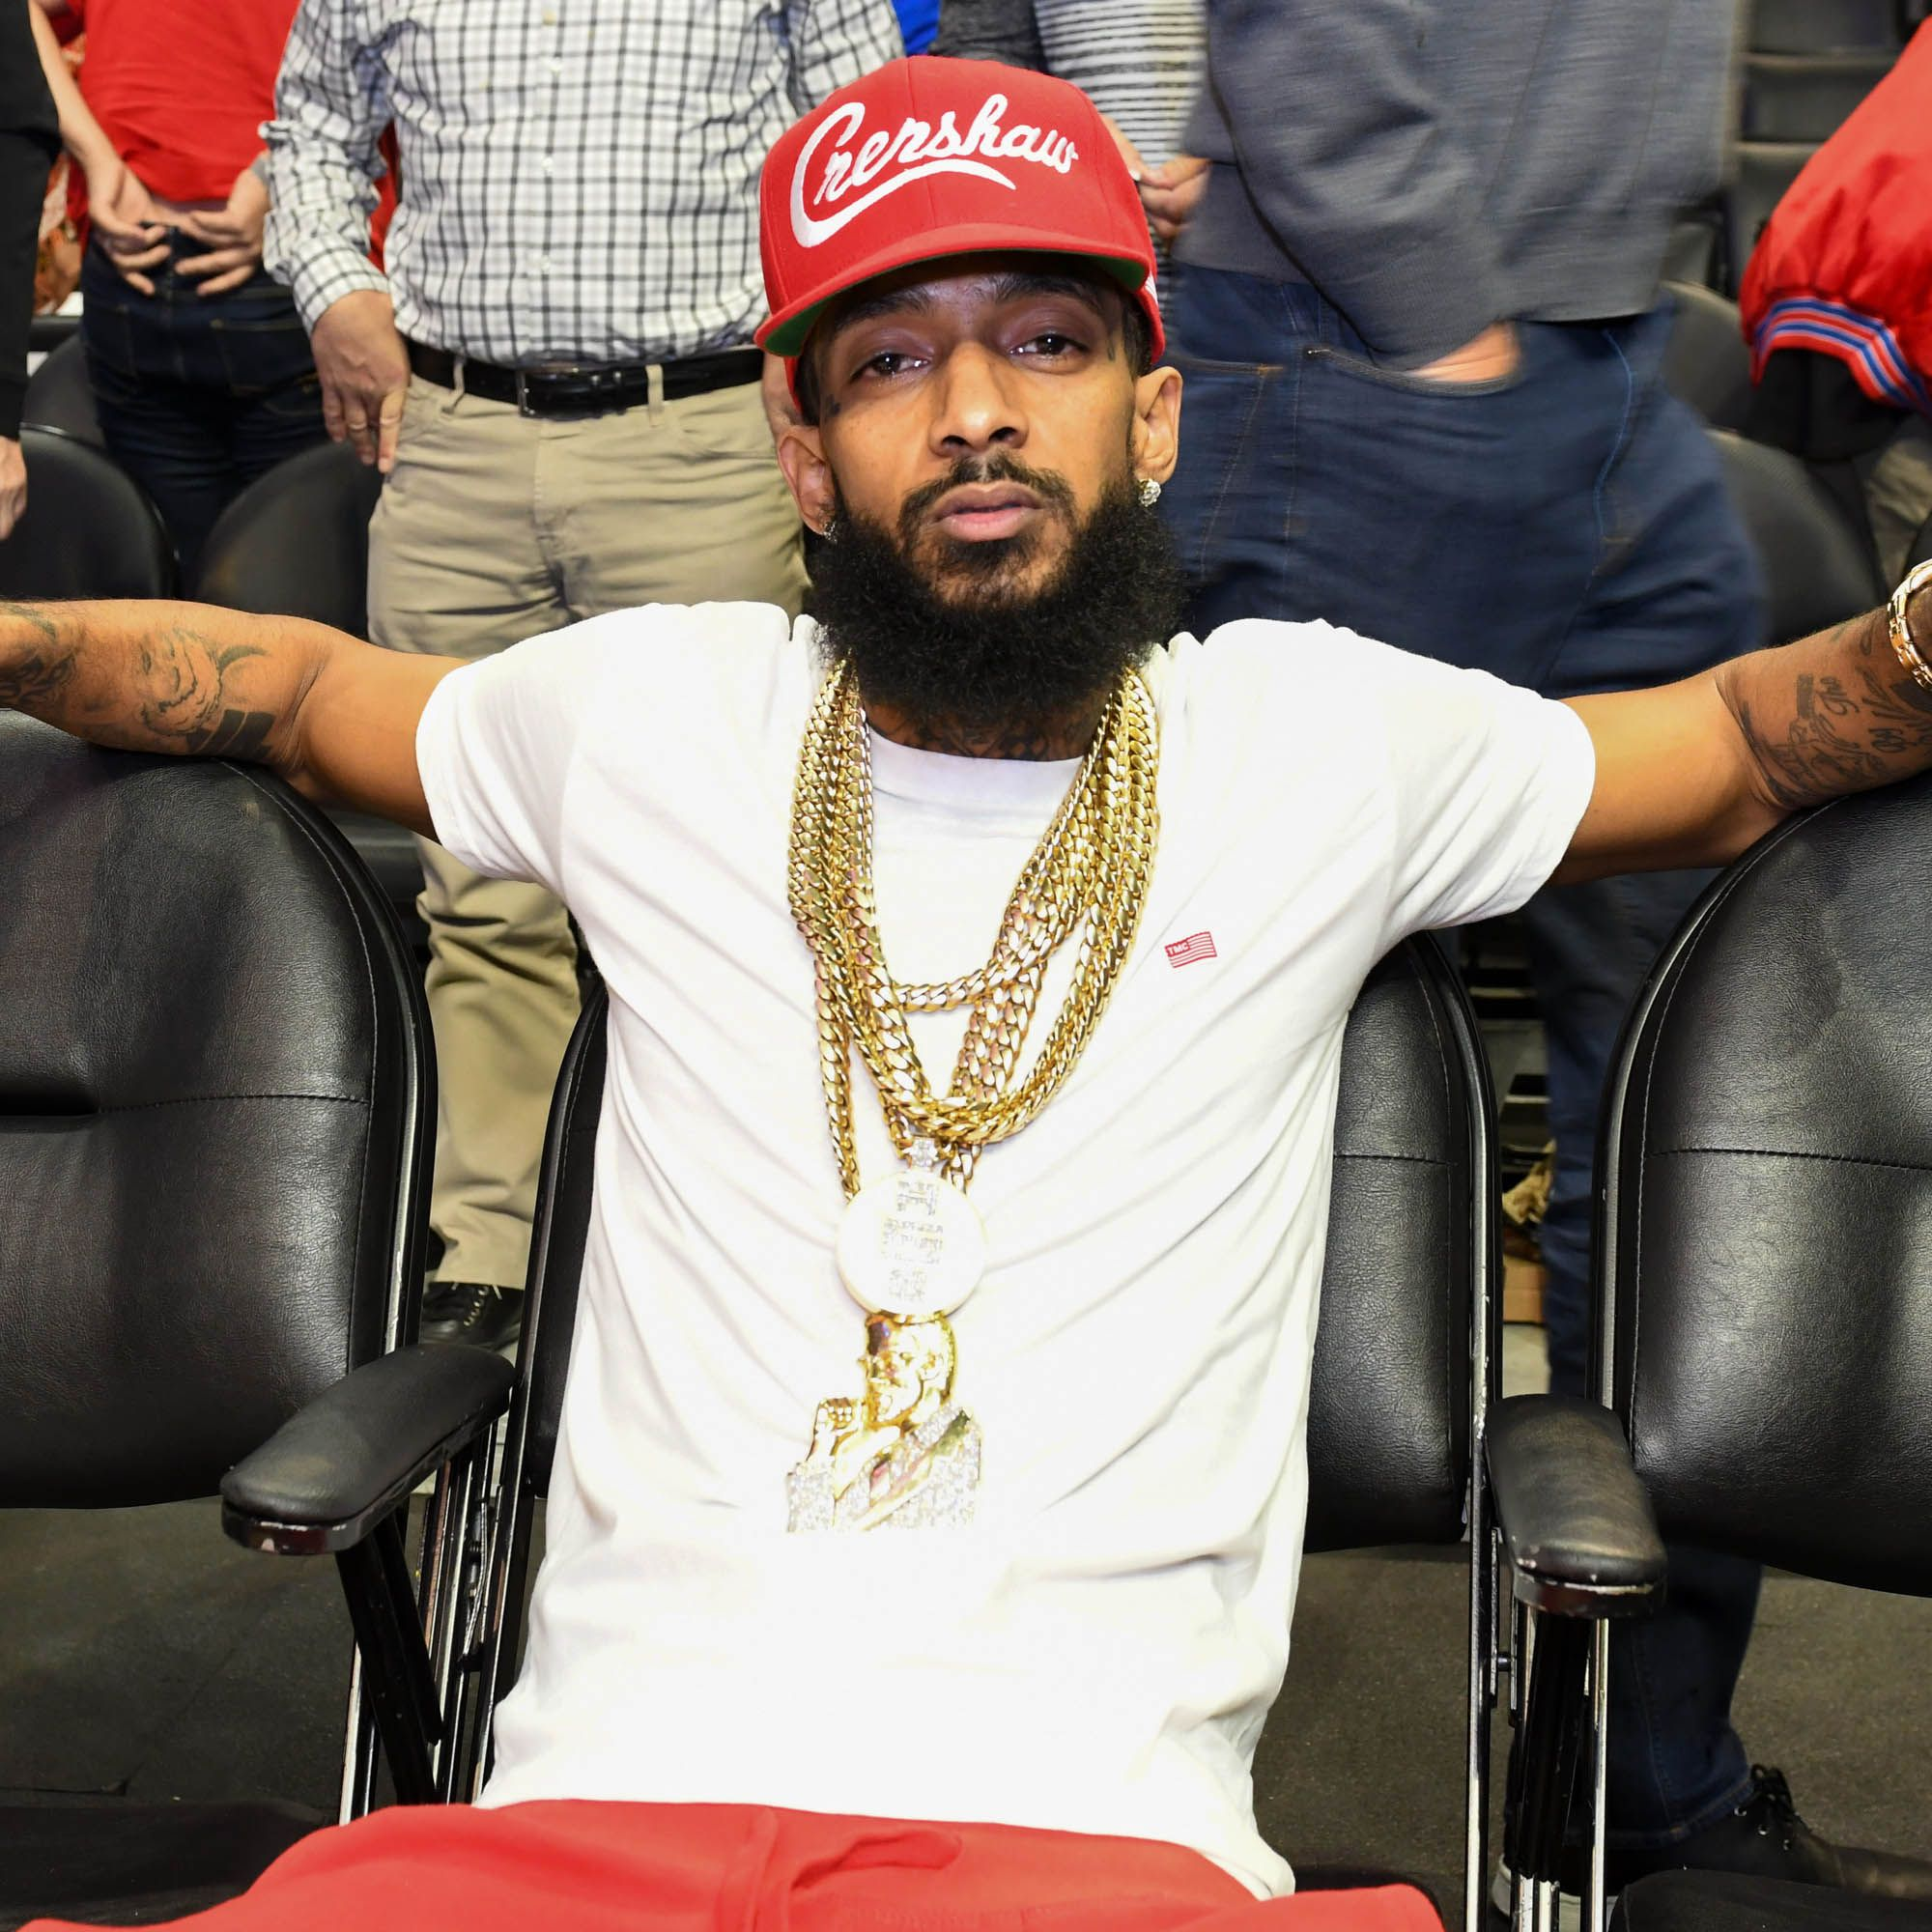 b4d05668d7 Nipsey Hussle's The Marathon Clothing Brand Is a Big Part of the Late  Rapper's Legacy